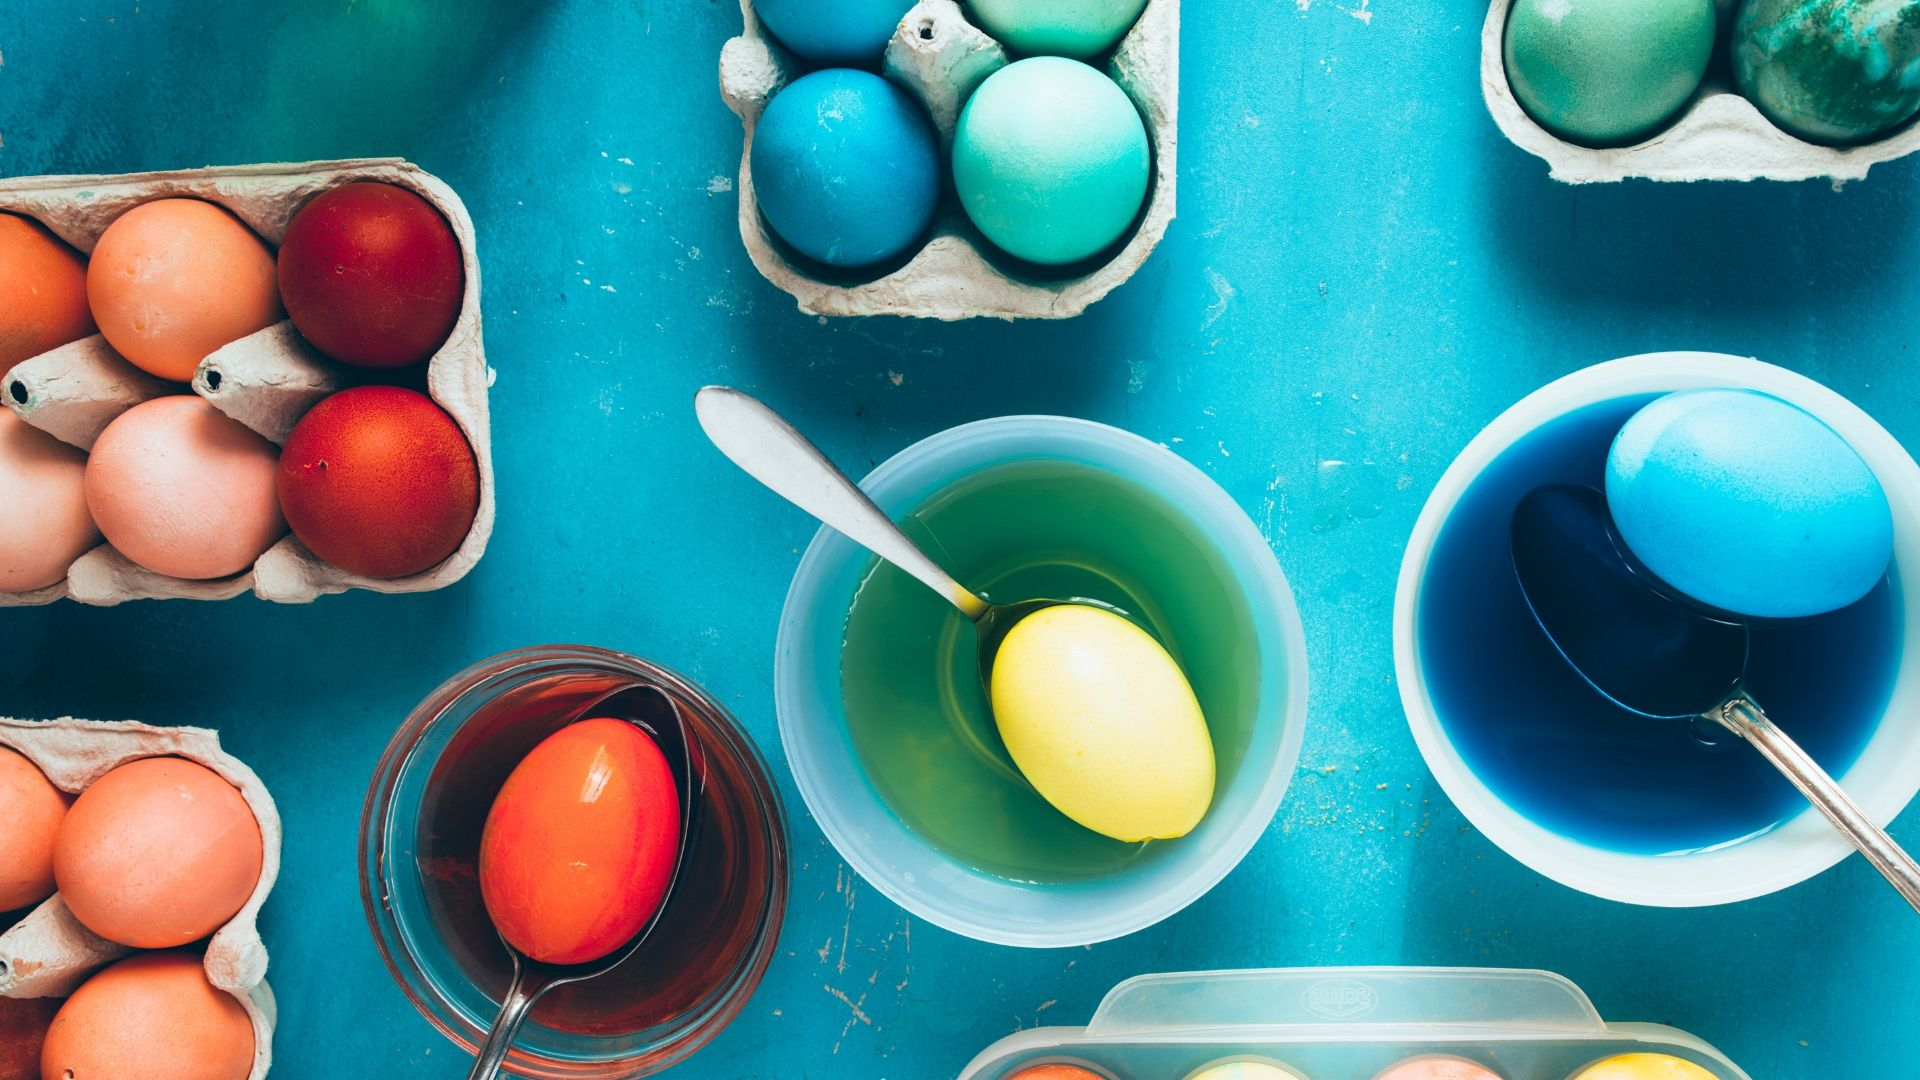 Image of Dyeing Eggs